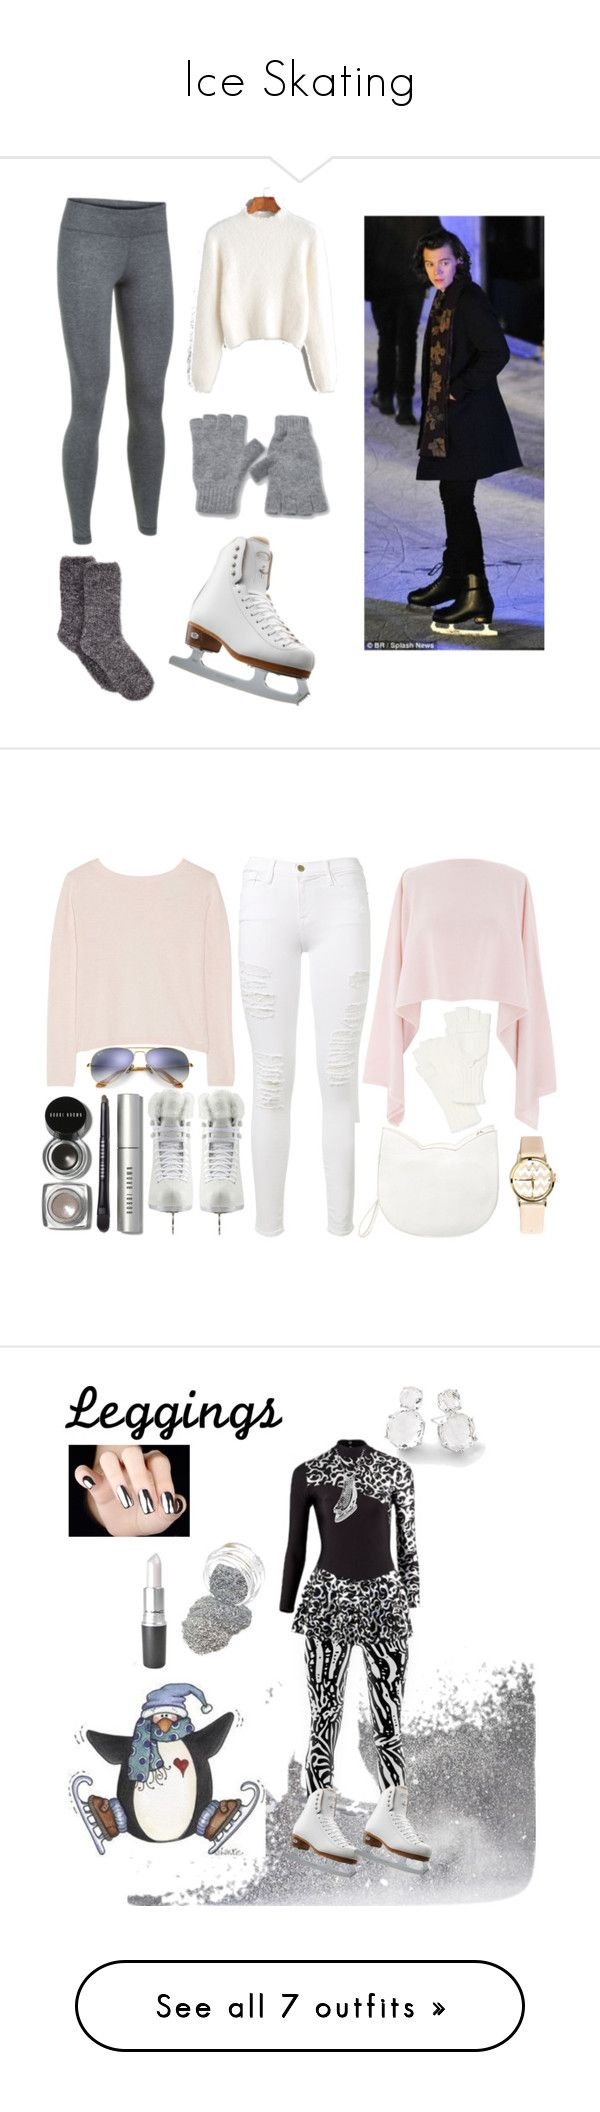 """""""Ice Skating"""" by la-yuki ❤ liked on Polyvore featuring Under Armour, Riedell, Johnstons of Elgin, Ray-Ban, Frame, Artistique, Banjo & Matilda, Forever 21, Henri Bendel and Echo"""